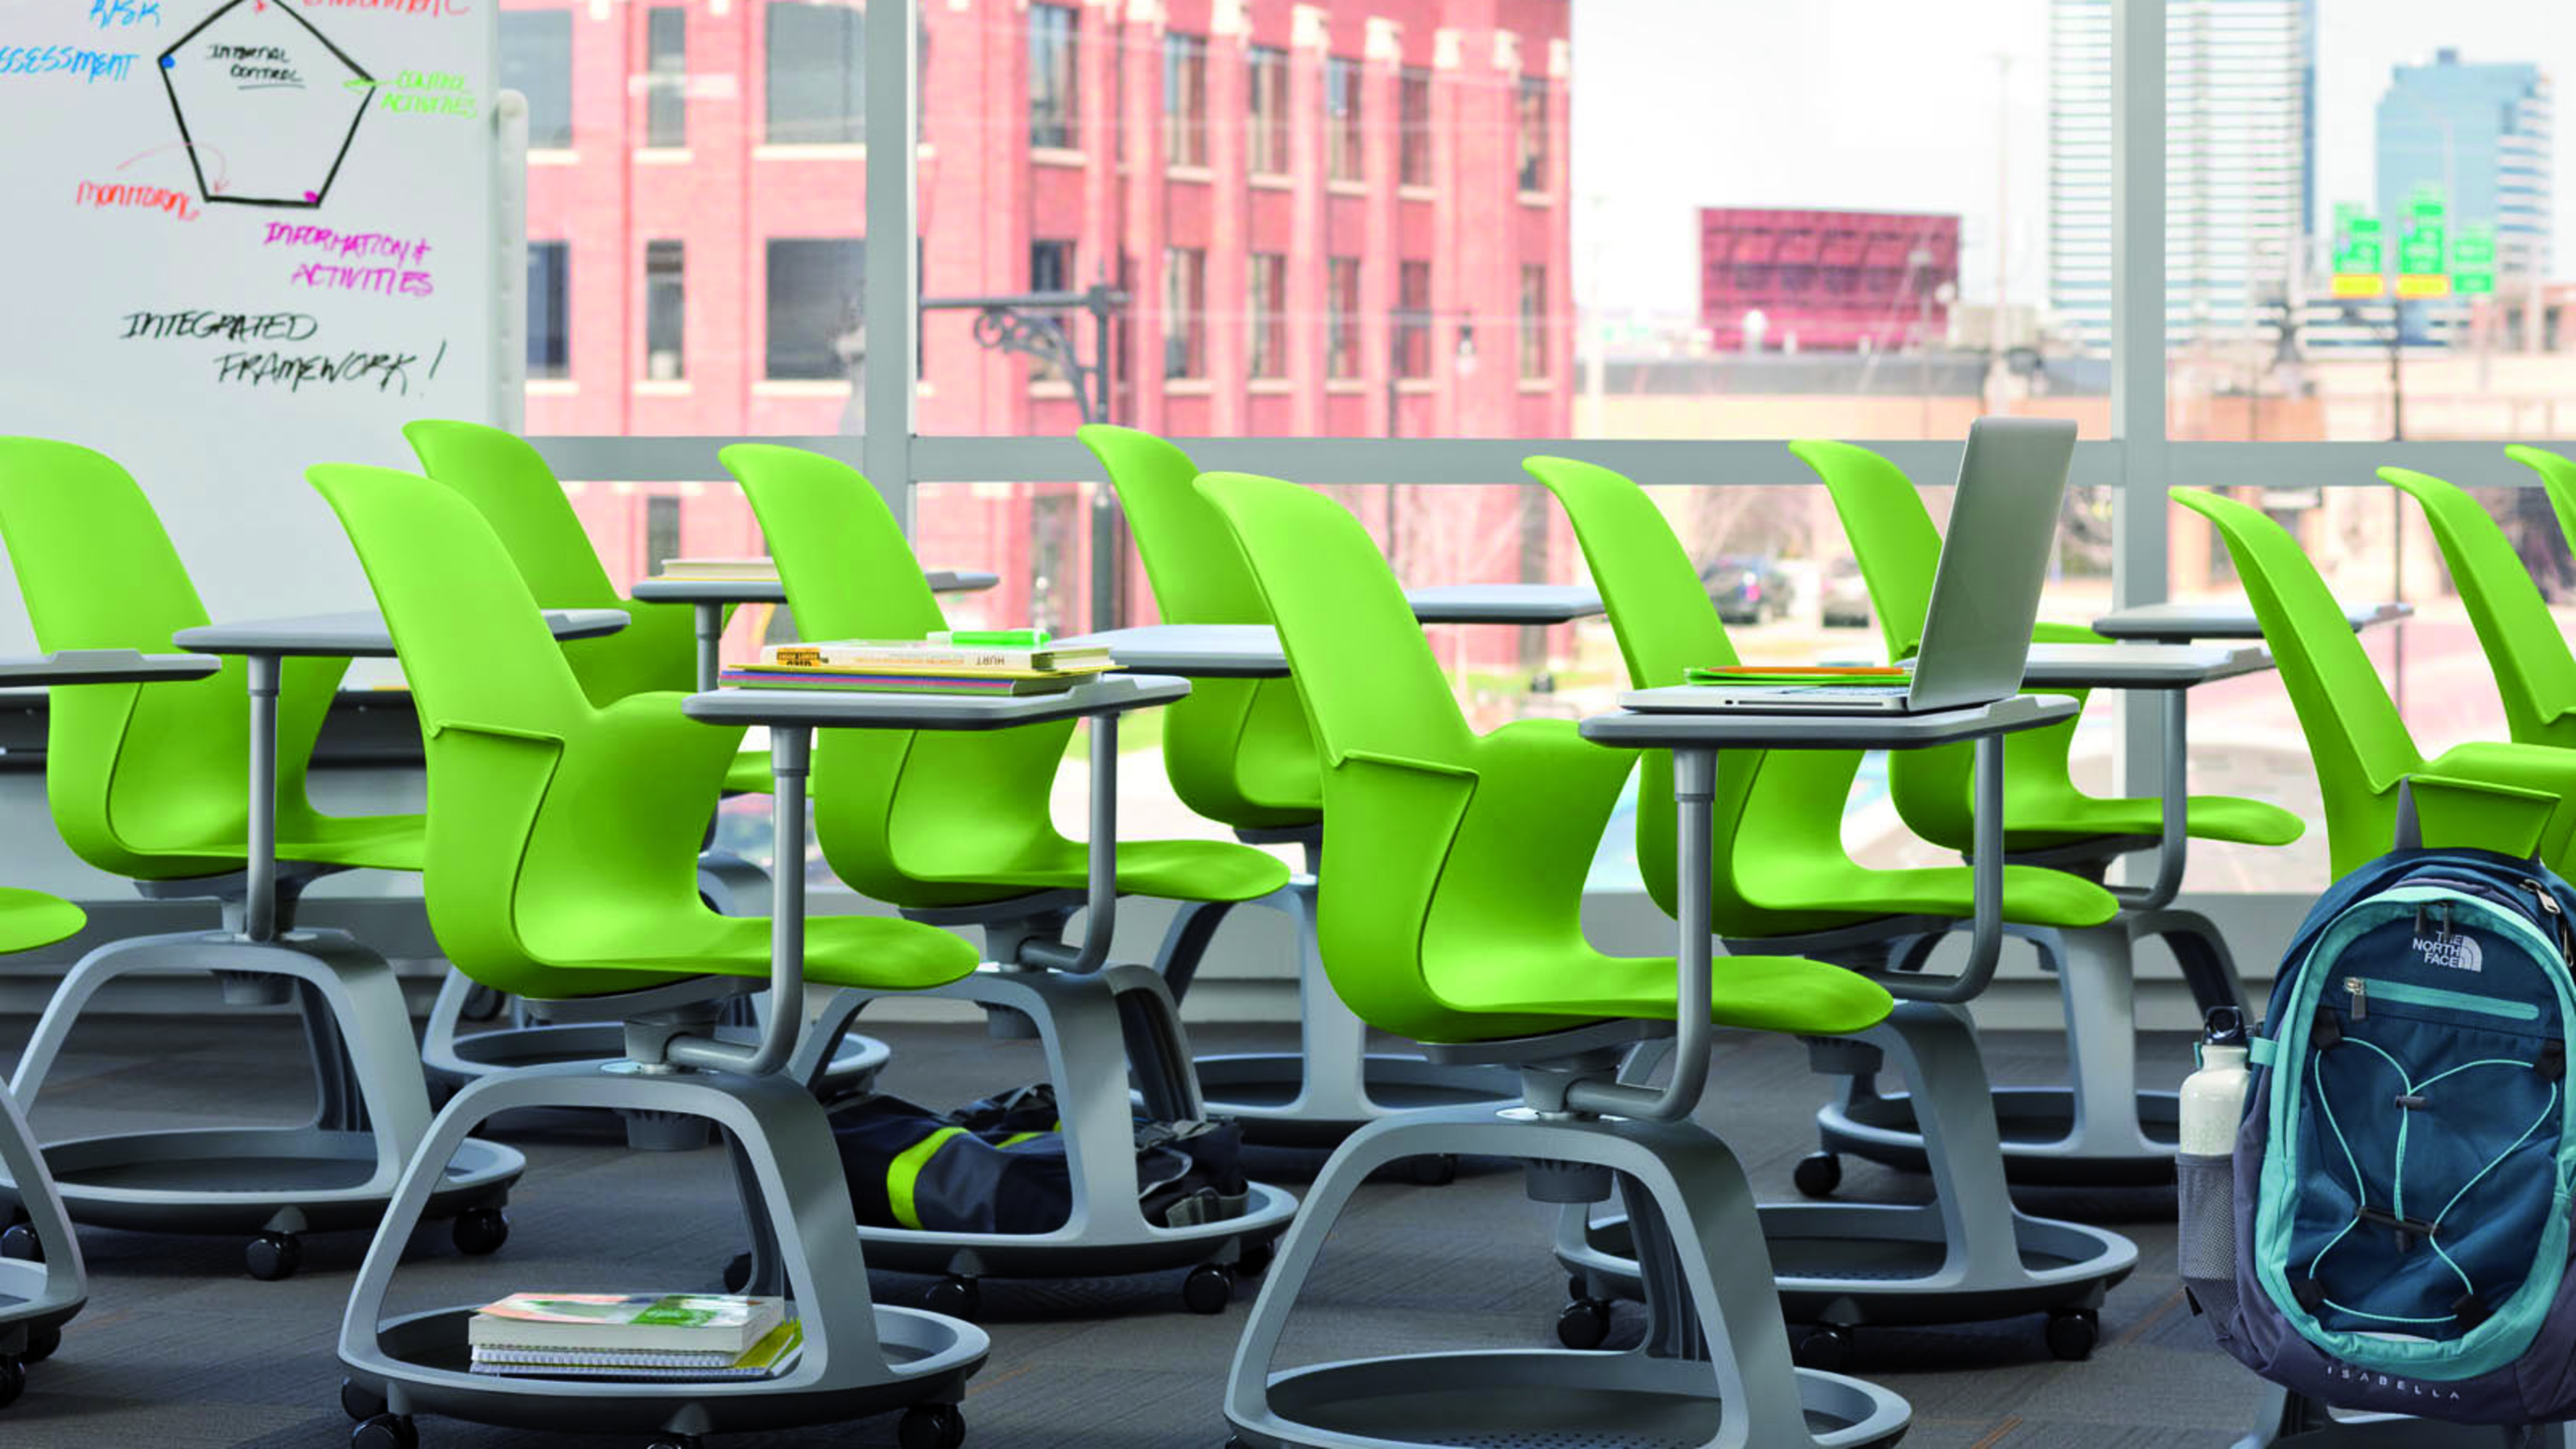 Collaborative Learning Classroom Furniture ~ Node classroom chairs for active learning steelcase